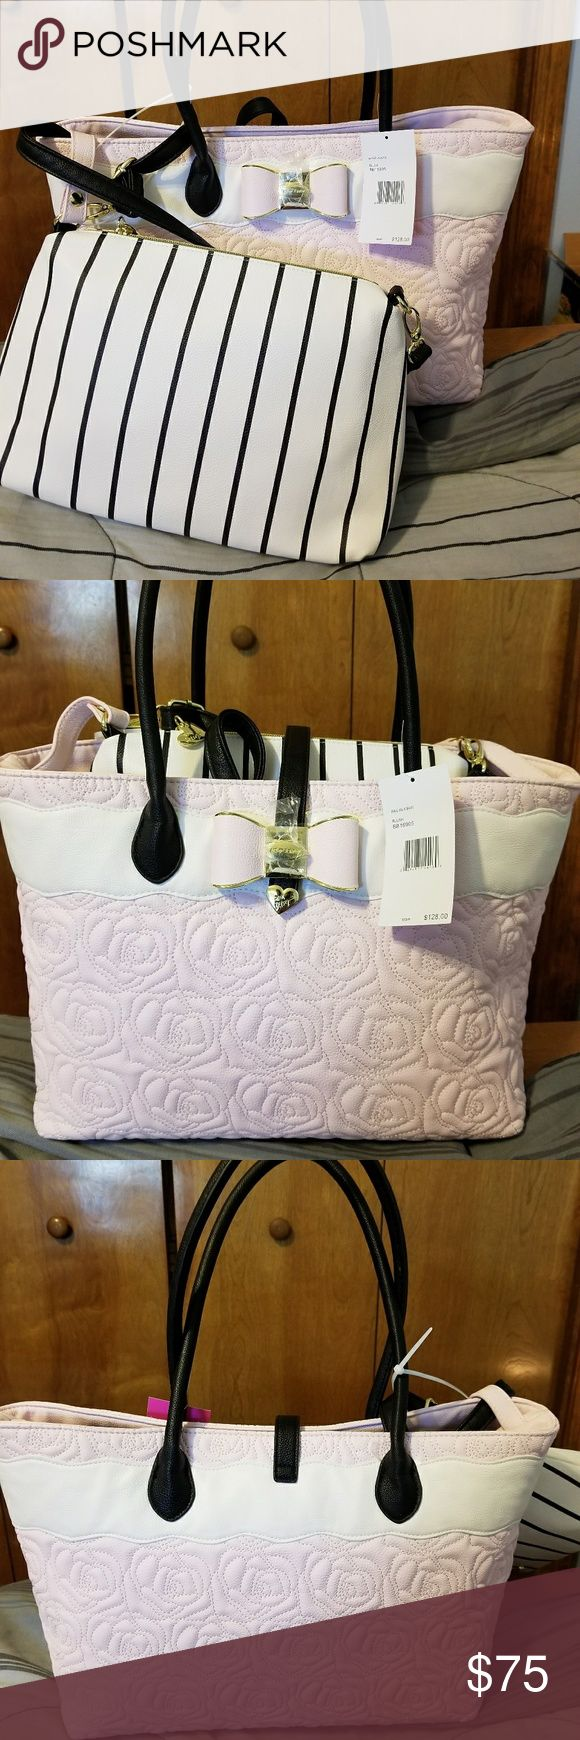 "BNWT Betsey Johnson bag in a bag Blush rose tote with single zipper compartment and two side interior pockets.  Strap closure.   10 1/2"" H 17"" L 7"" W 9"" handle   White w/black stripes shoulder bag with single zipper compartment and two side interior pockets.   9"" H 11 1/2"" L 3 1/2"" W 20 1/2"" strap * Strap on this bag is adjustable and removable.   🌟🌟🌟🌟🌟 5 star seller  📫 fast shipping  Bundle and save!!  🚫 Sorry,  no trades Betsey Johnson Bags Totes"